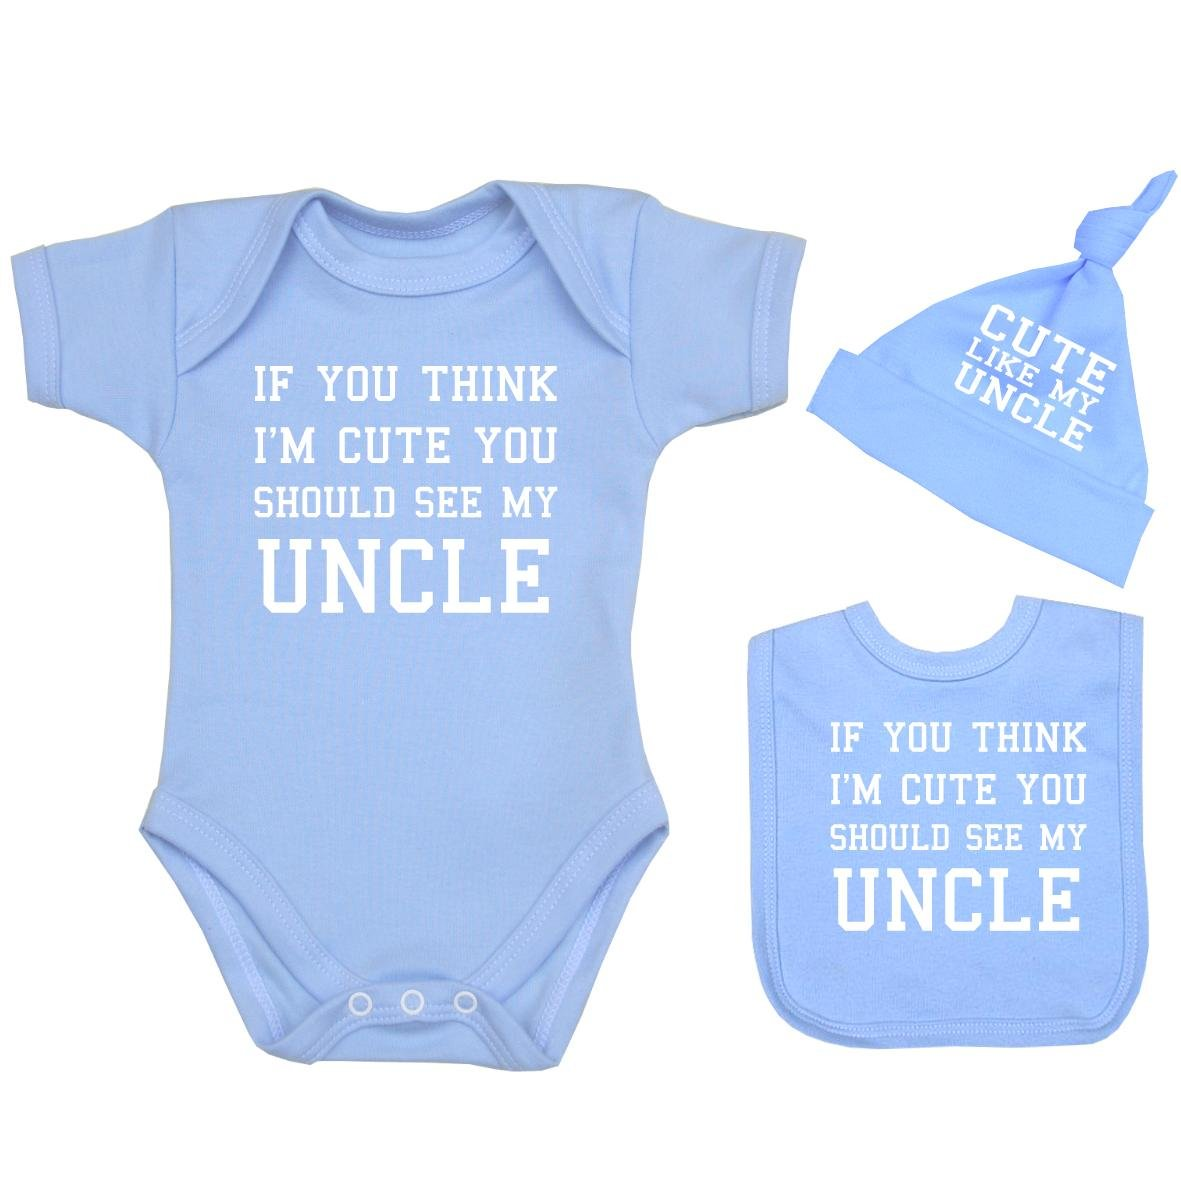 BabyPrem Baby If You Think I'm Cute See My Uncle Bodysuit Set 0-12 mth